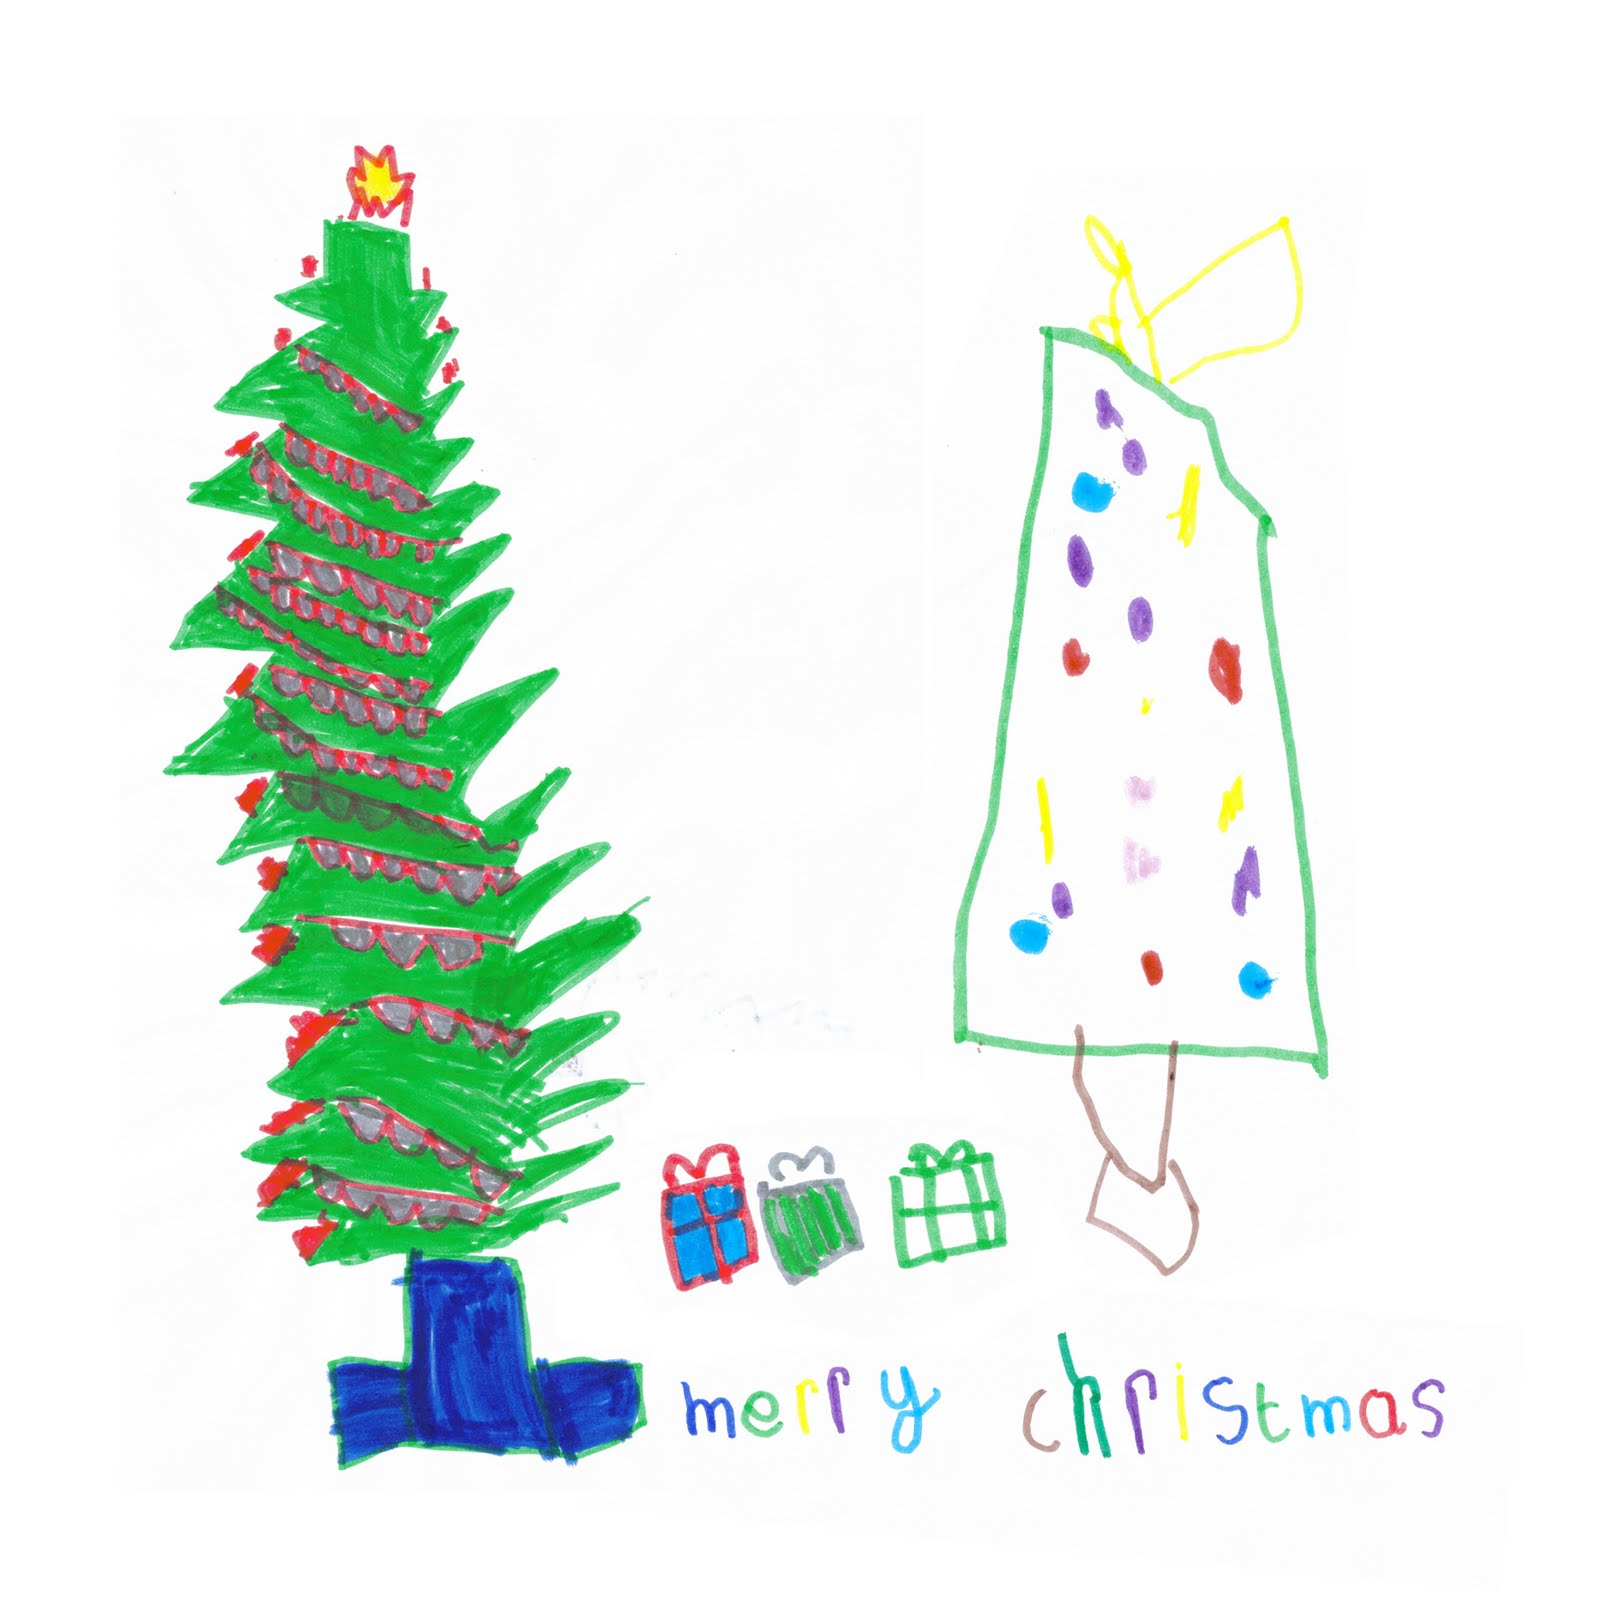 Gooseberrymoon: This Year's Children's Christmas Card